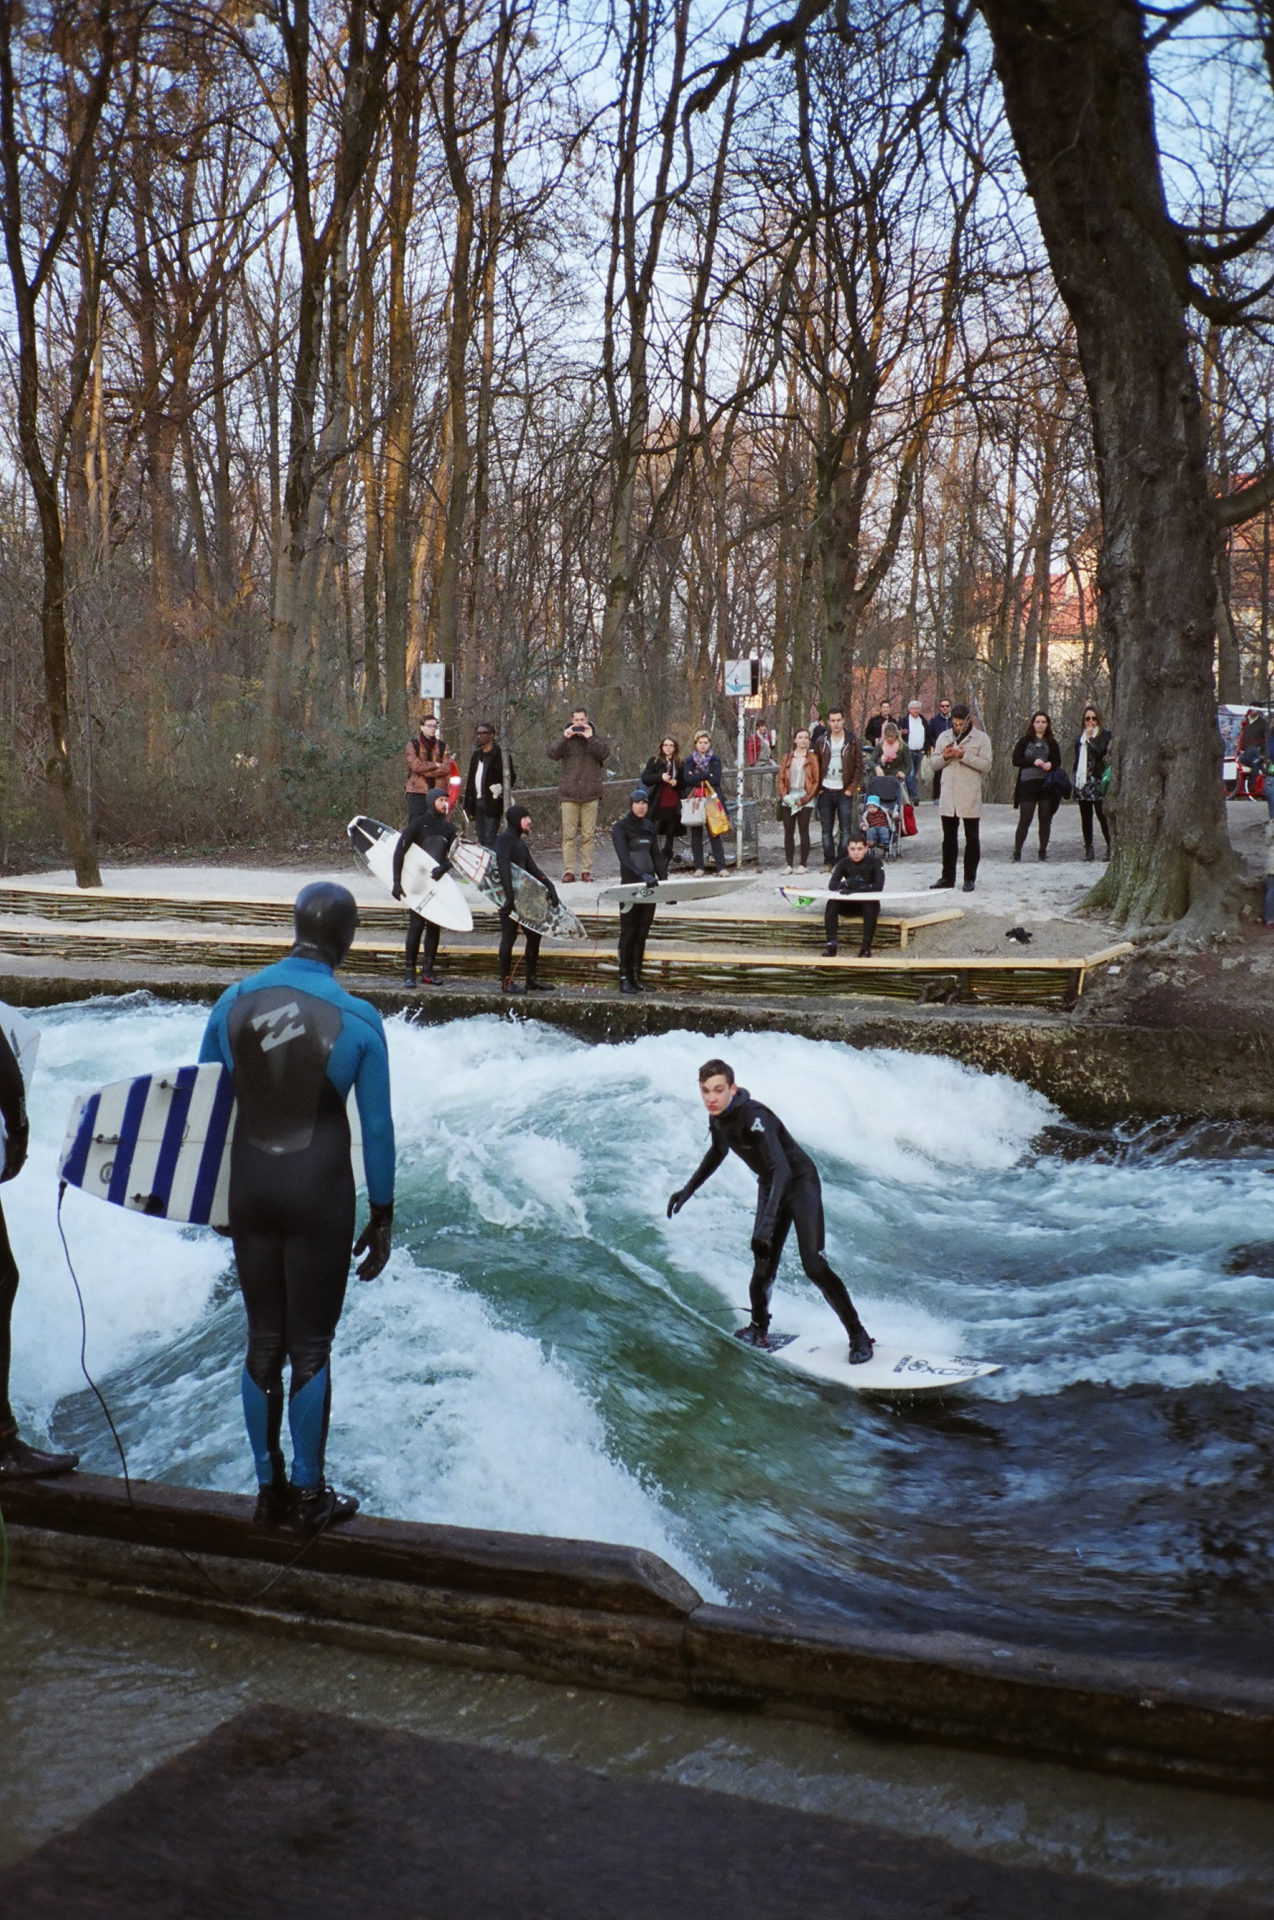 lukas brunner surfer eisbach munich surf ben bishop